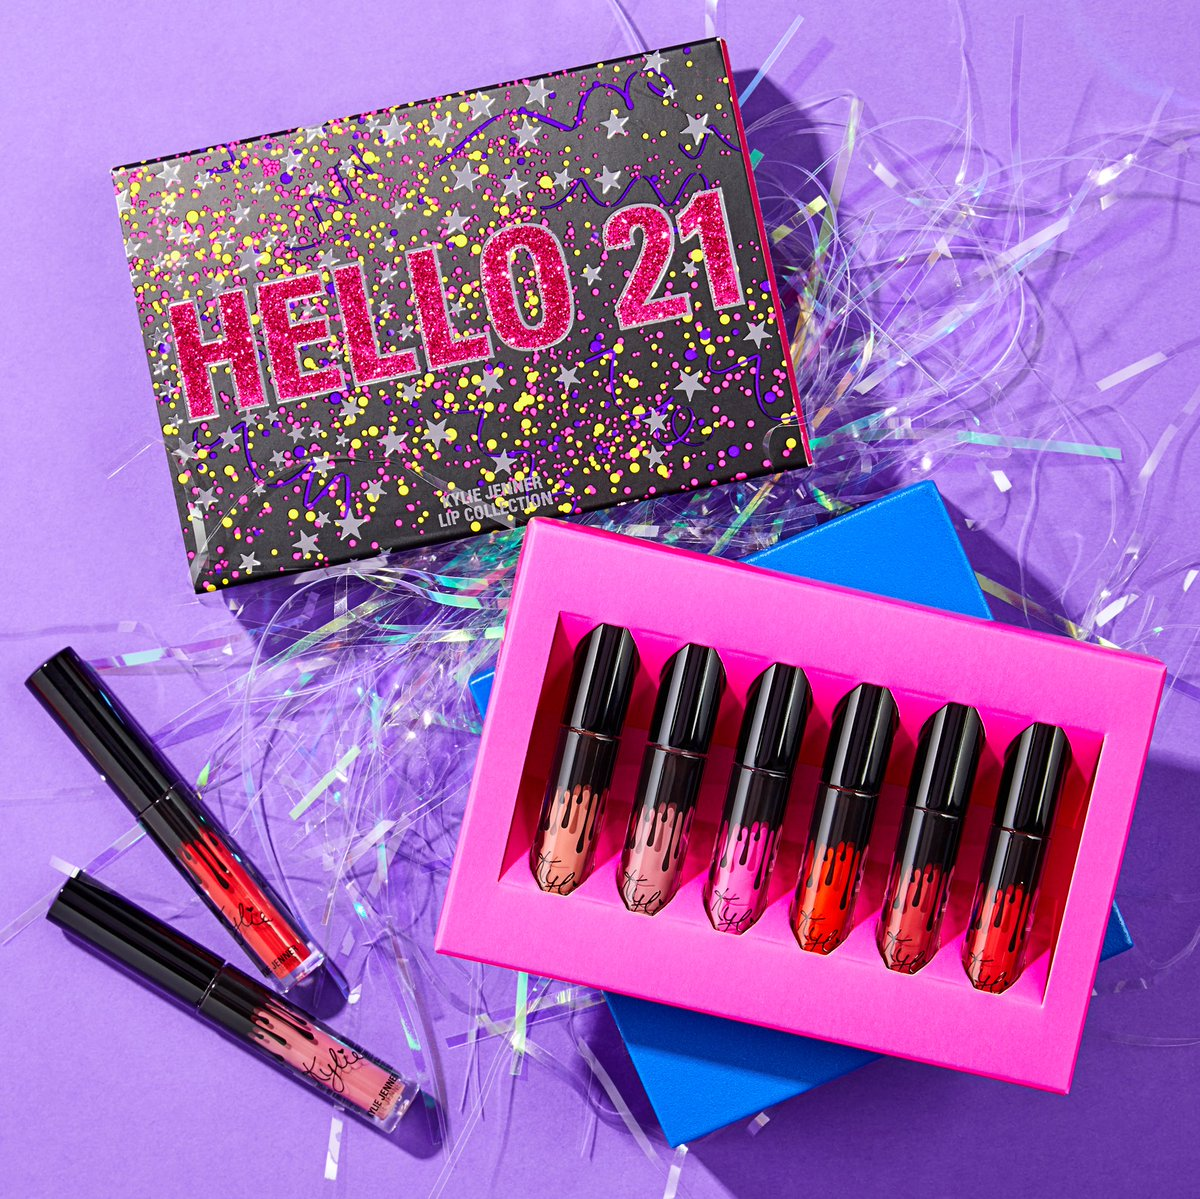 RT @kyliecosmetics: Get Kylie's birthday mini set for only $21.60 in our end of year sale! https://t.co/rkT2b8s8Tx https://t.co/8viPsmiG8L